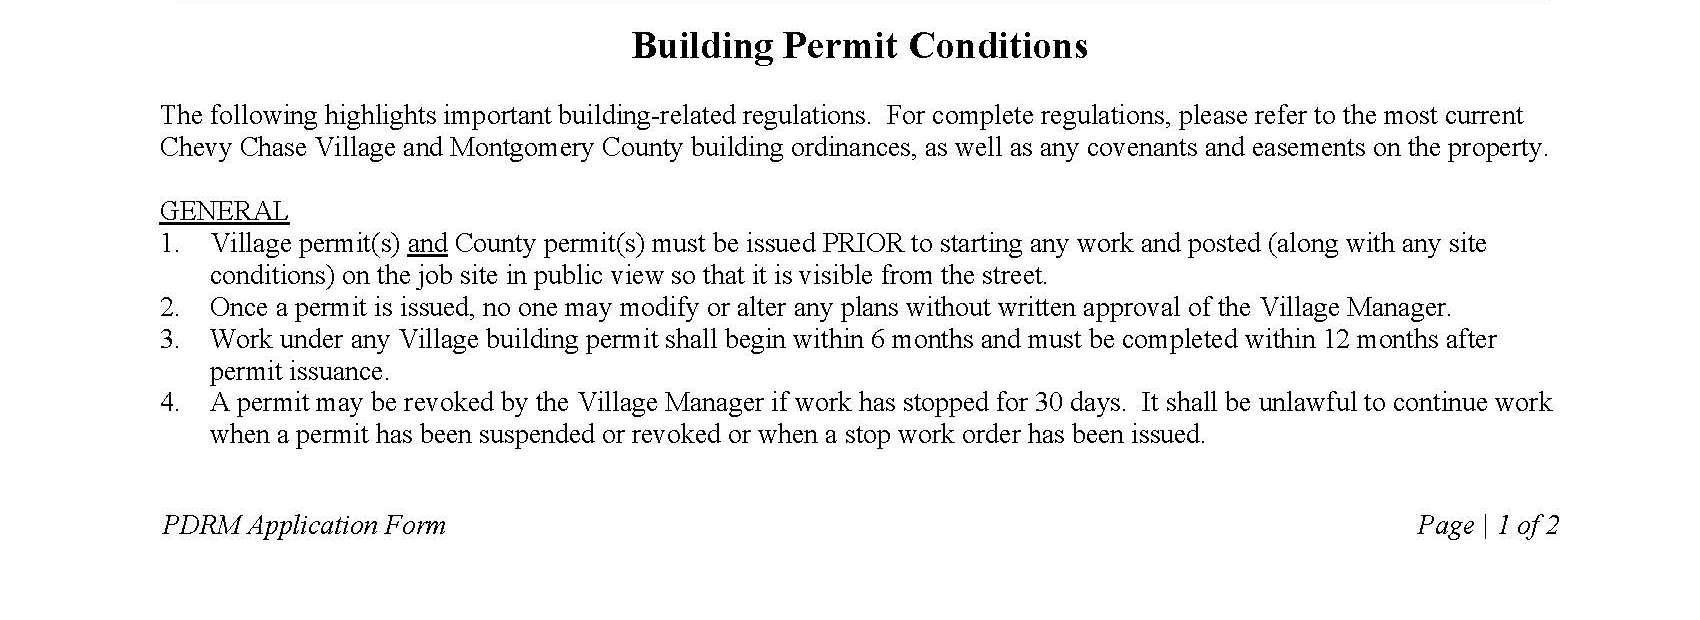 Building Permit Conditions